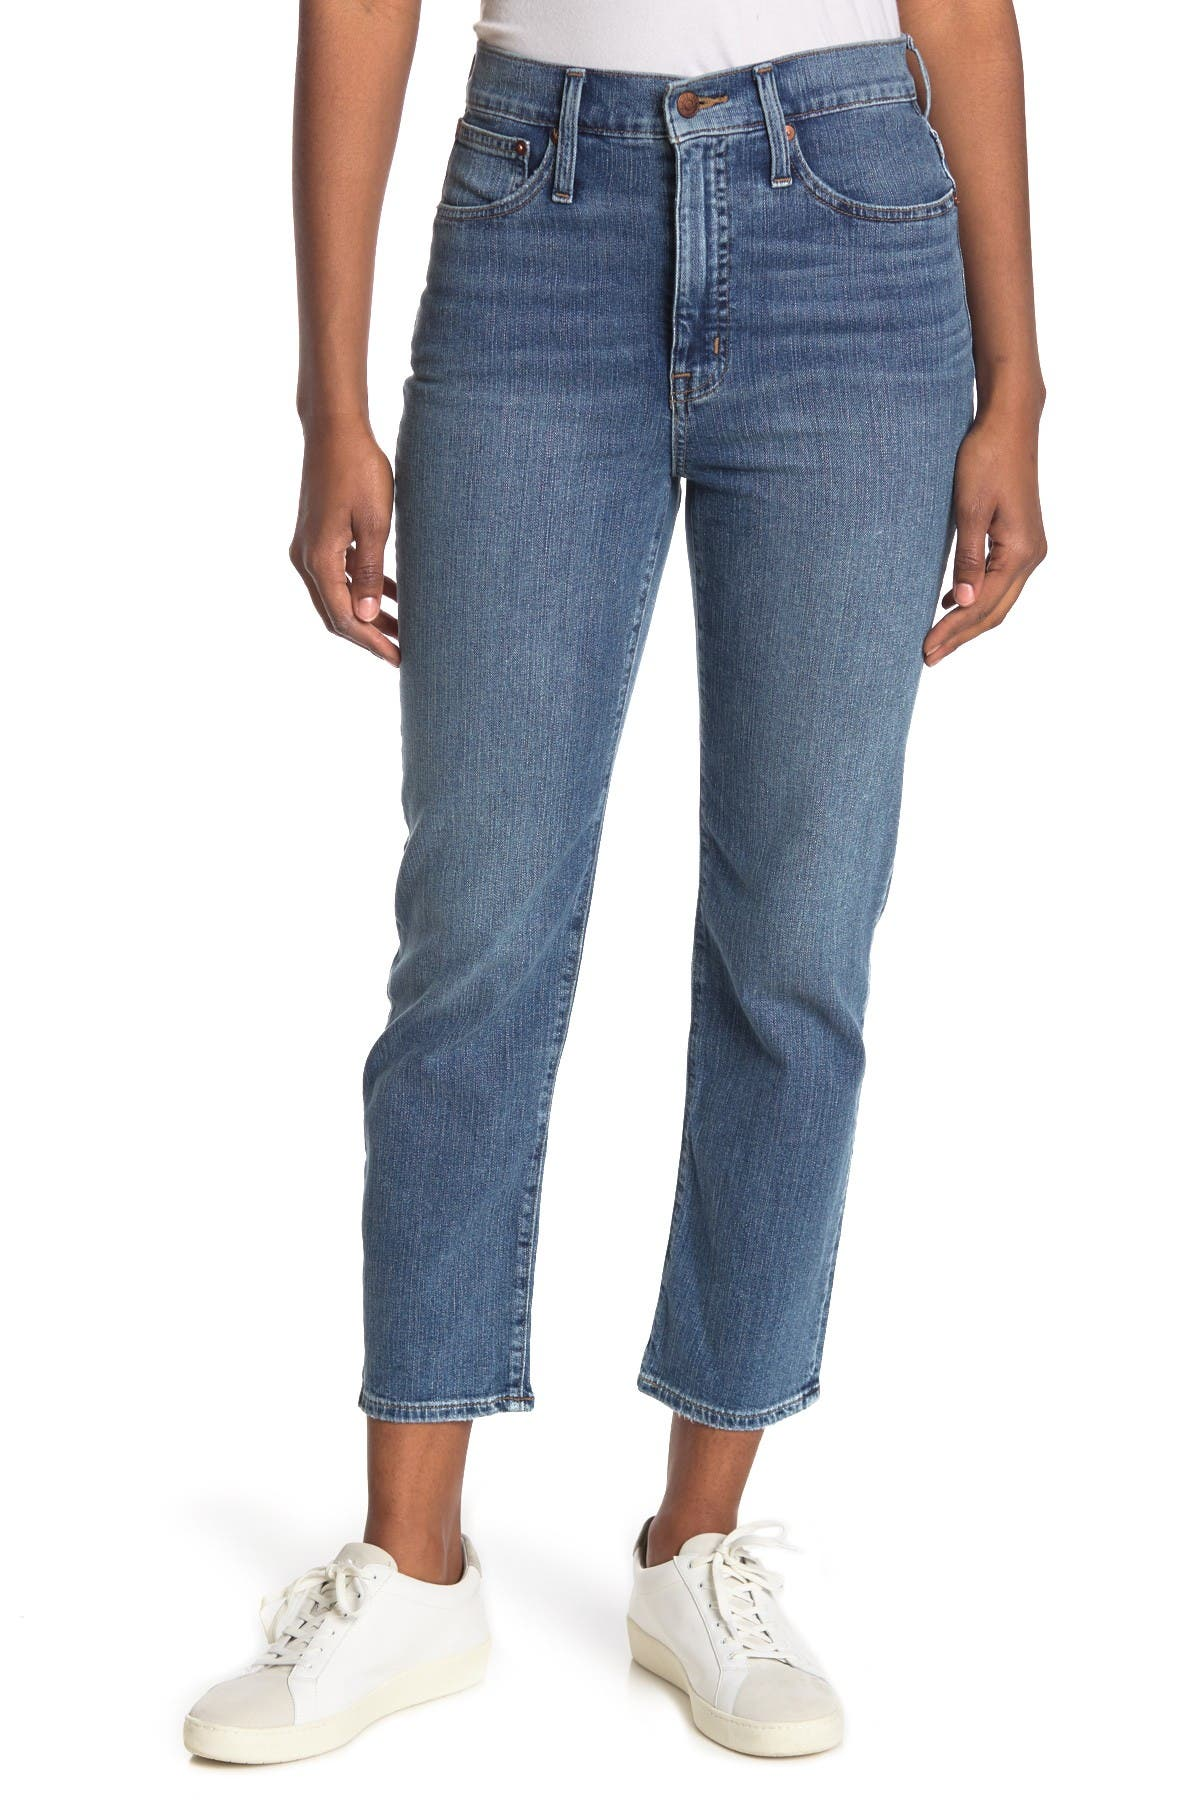 Image of Madewell Classic Straight Leg Jeans